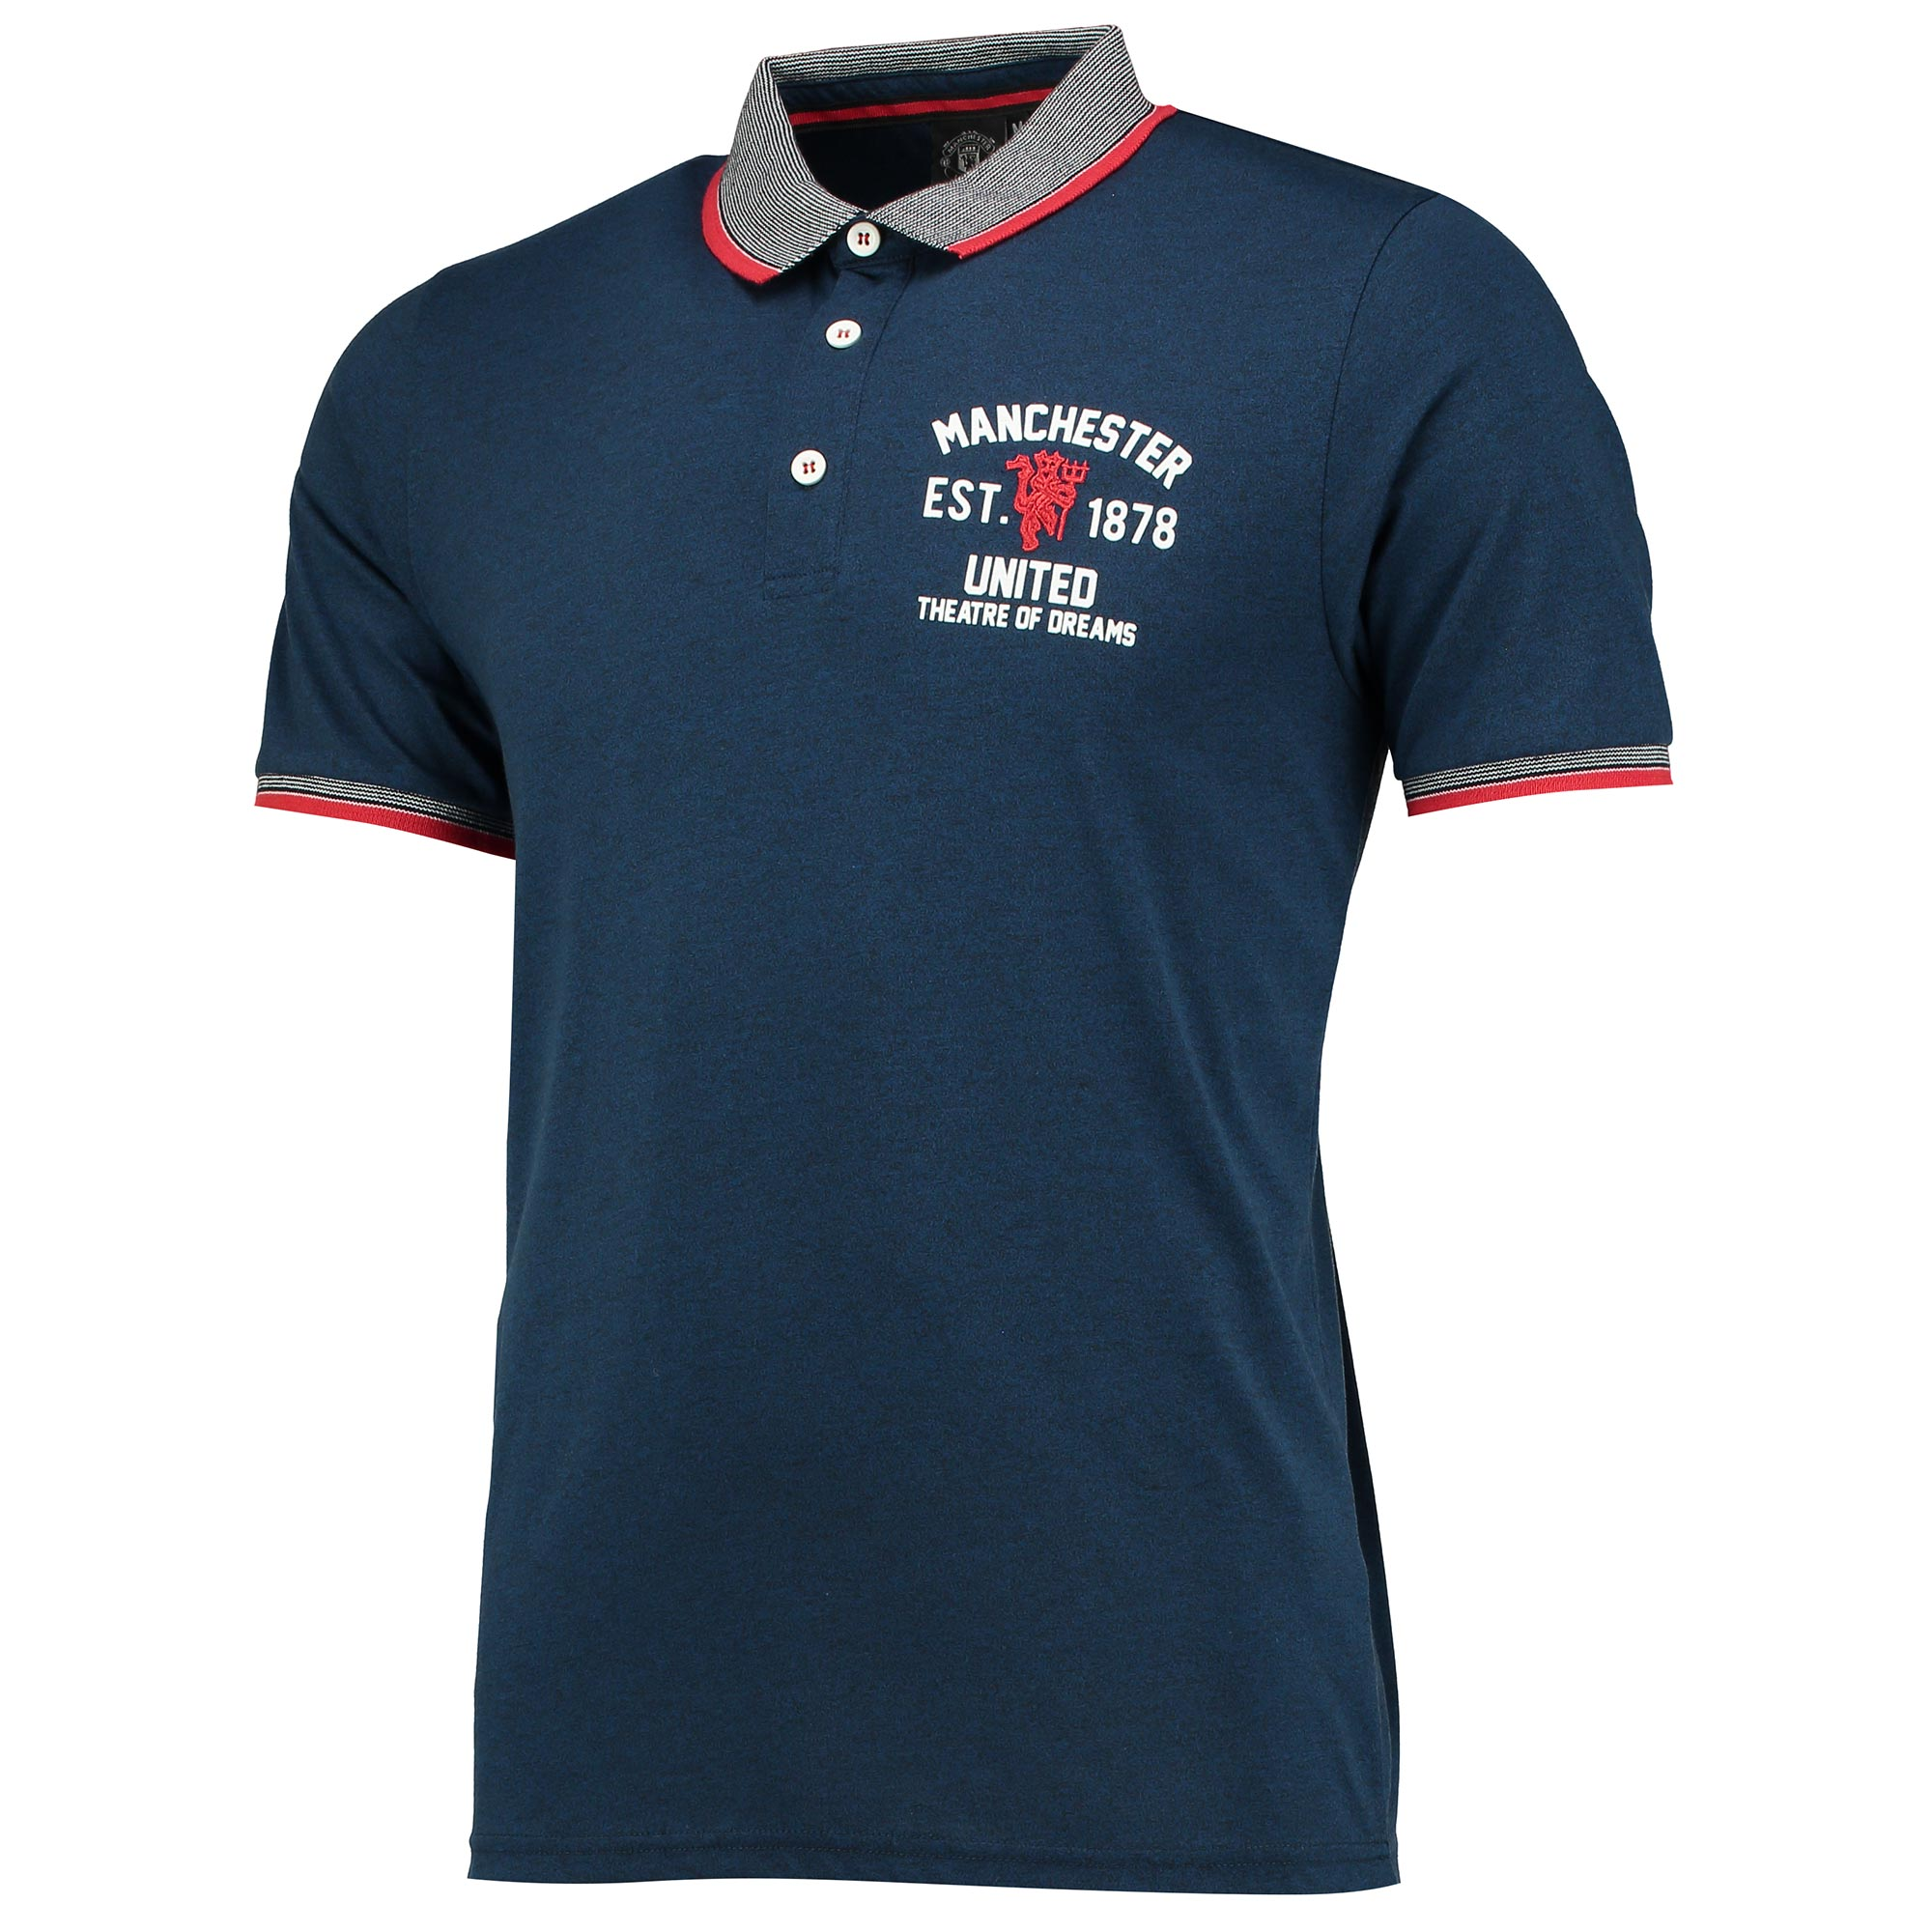 Manchester United Premium Established 1878 Polo Shirt - Blue Marl - Me